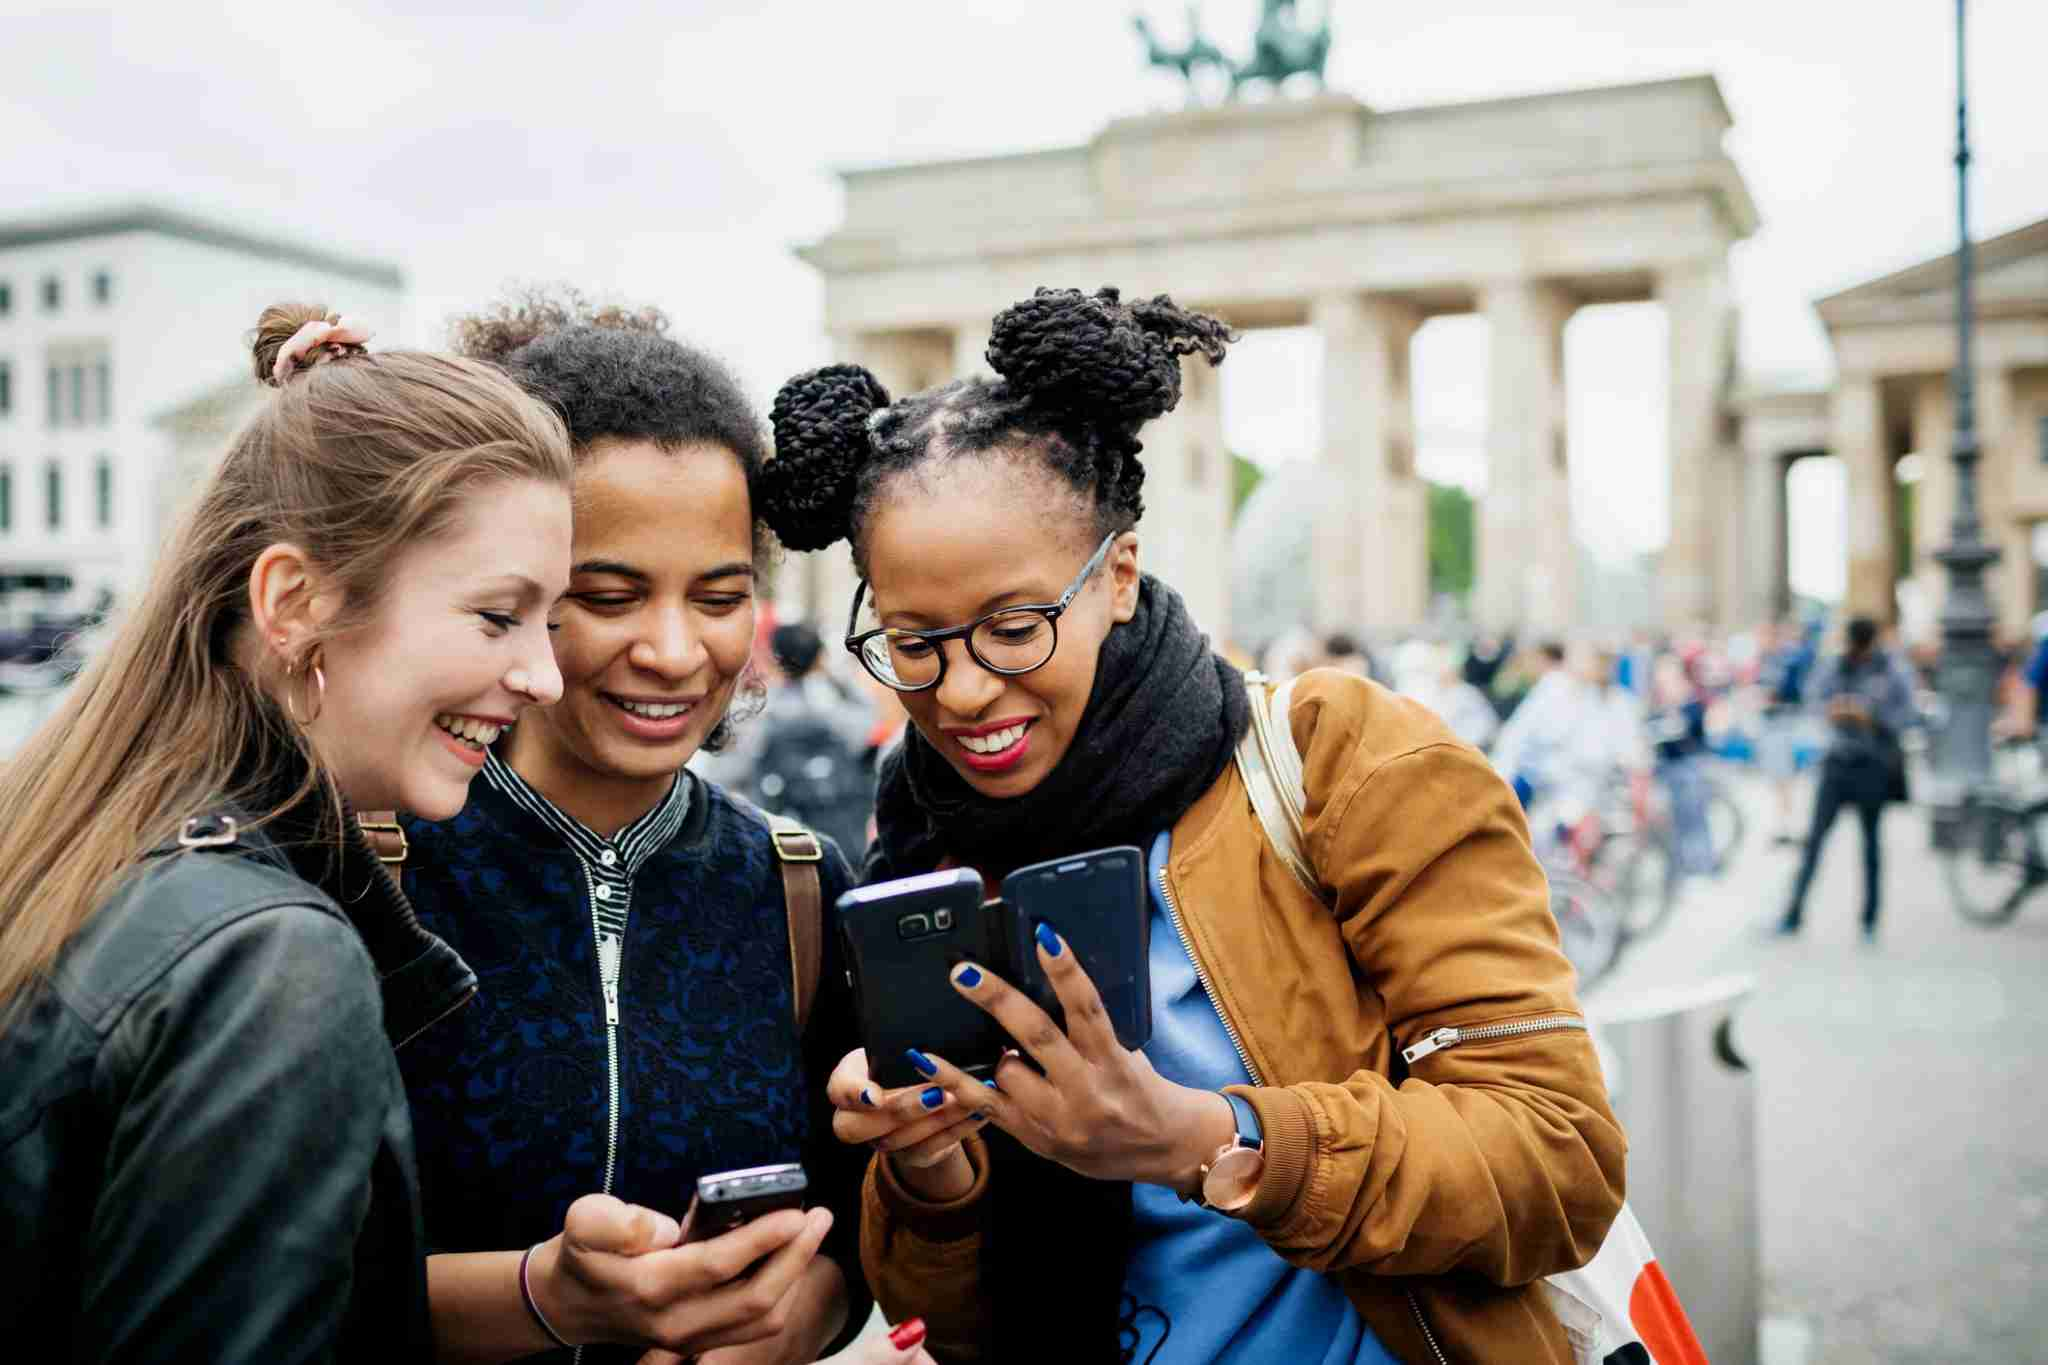 A group of friends travelling together are exploring the local tourist attractions and architecture, they stop for a moment to look over recent photos on their phones. Photo by Hinterhaus Productions/Getty